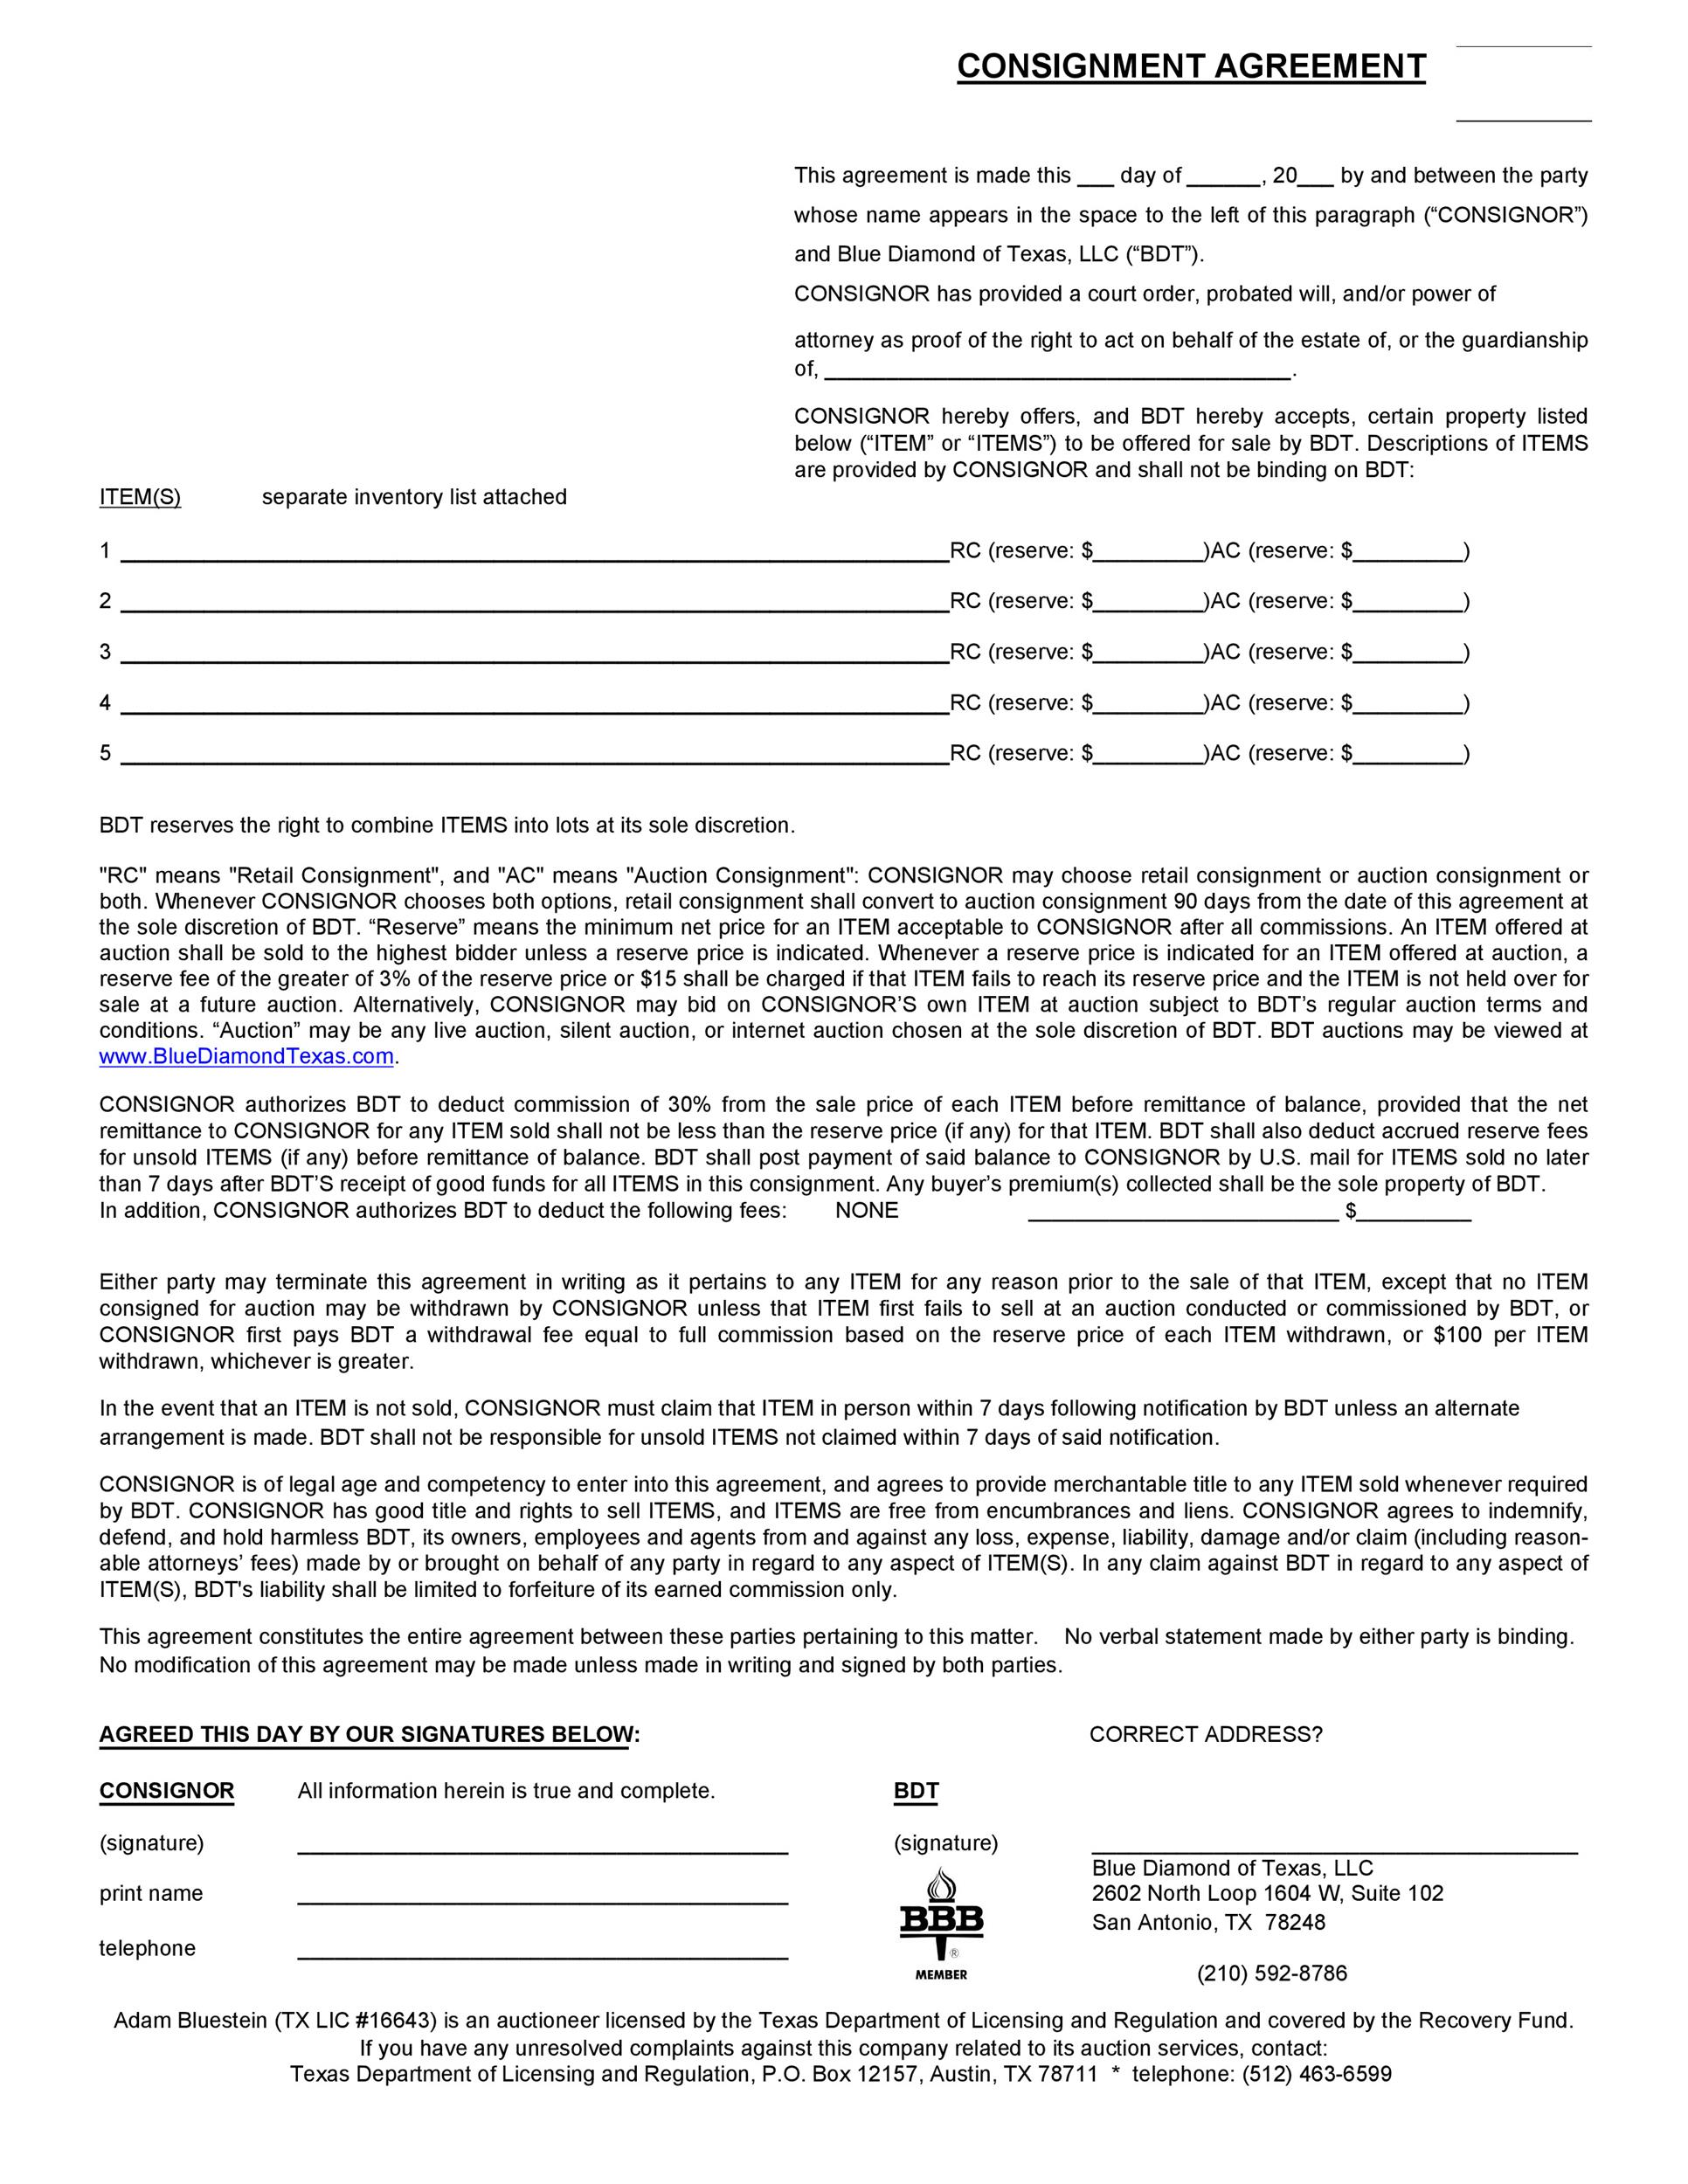 Sample Consignment Agreement Printable Consignment Agreement